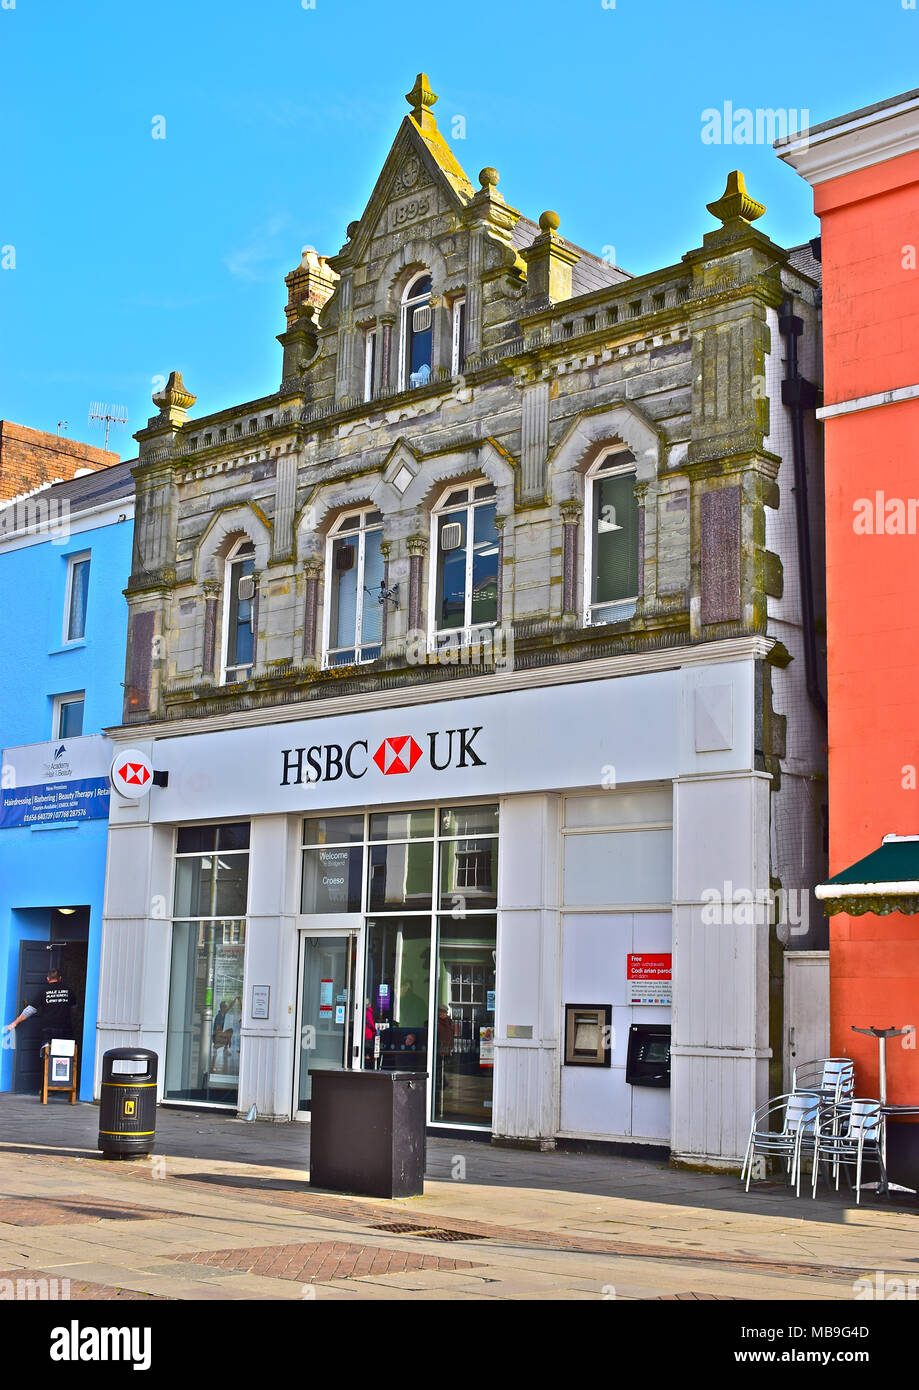 The HSBC Bank, Bridgend Branch,South Wales. The premises are listed as 'A building of Local Importance'(Draft). Stock Photo